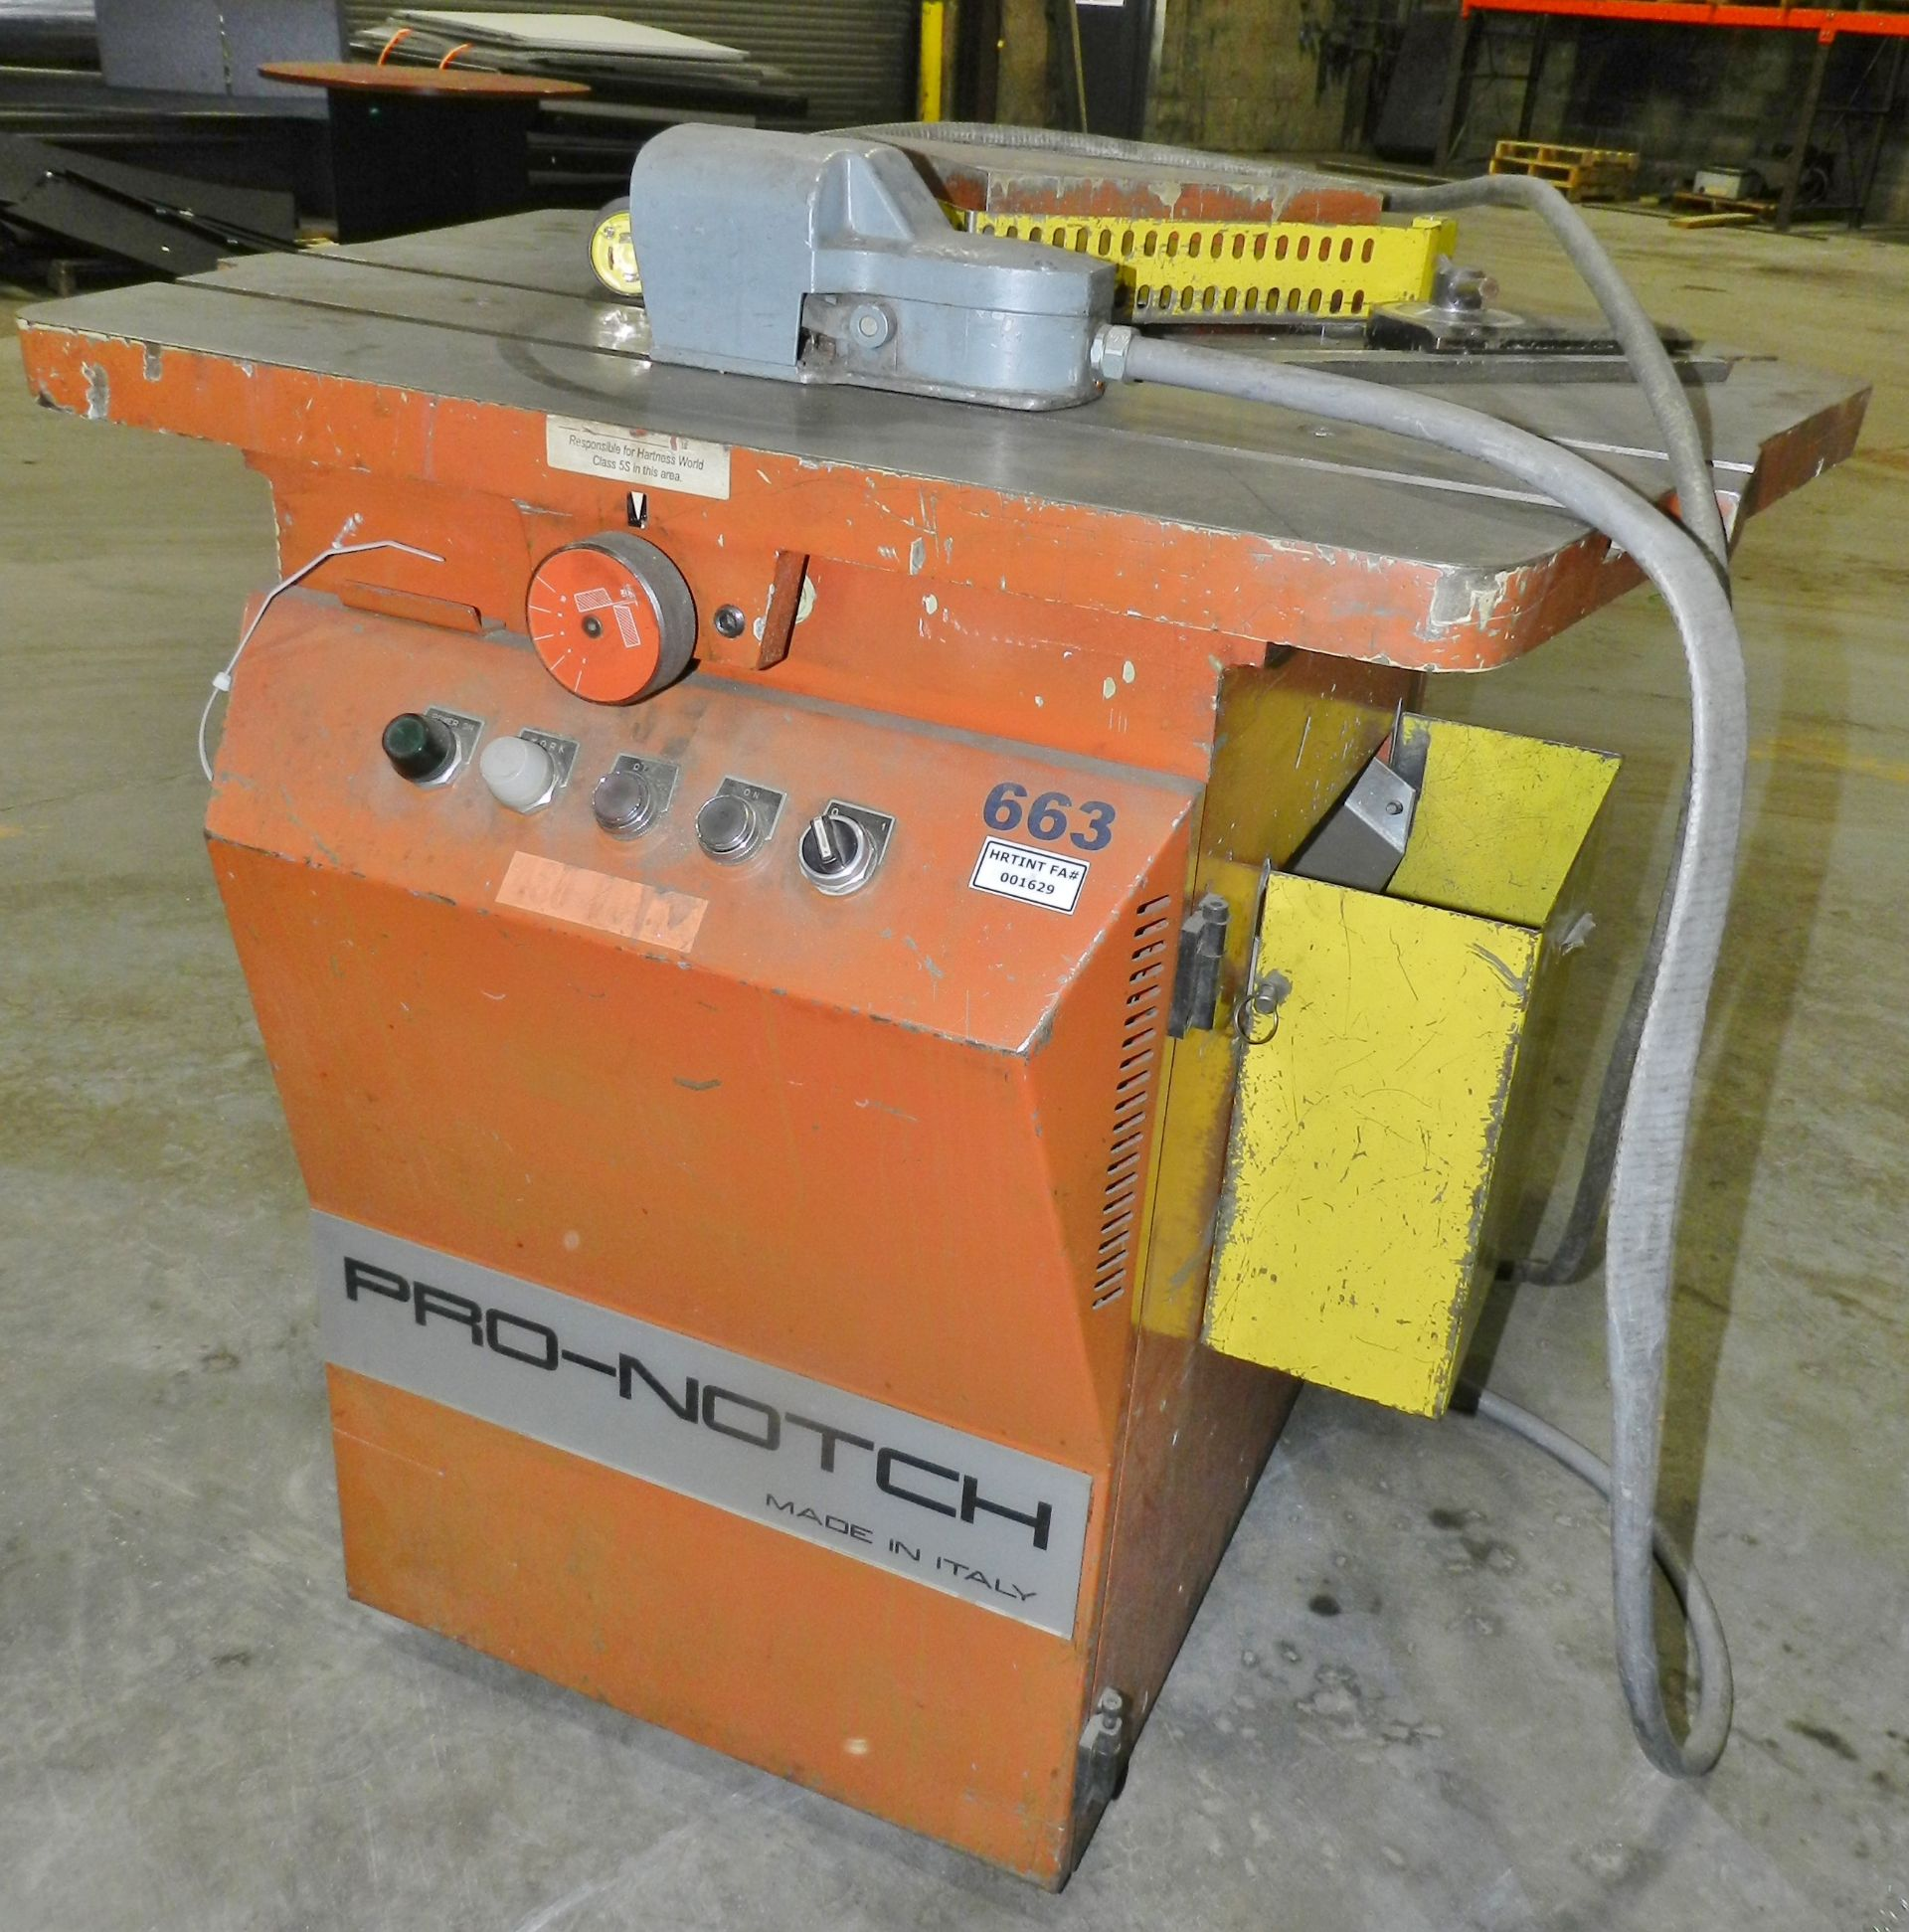 Lot 53 - Pro-Notch 10 x 10 Metal Notcher